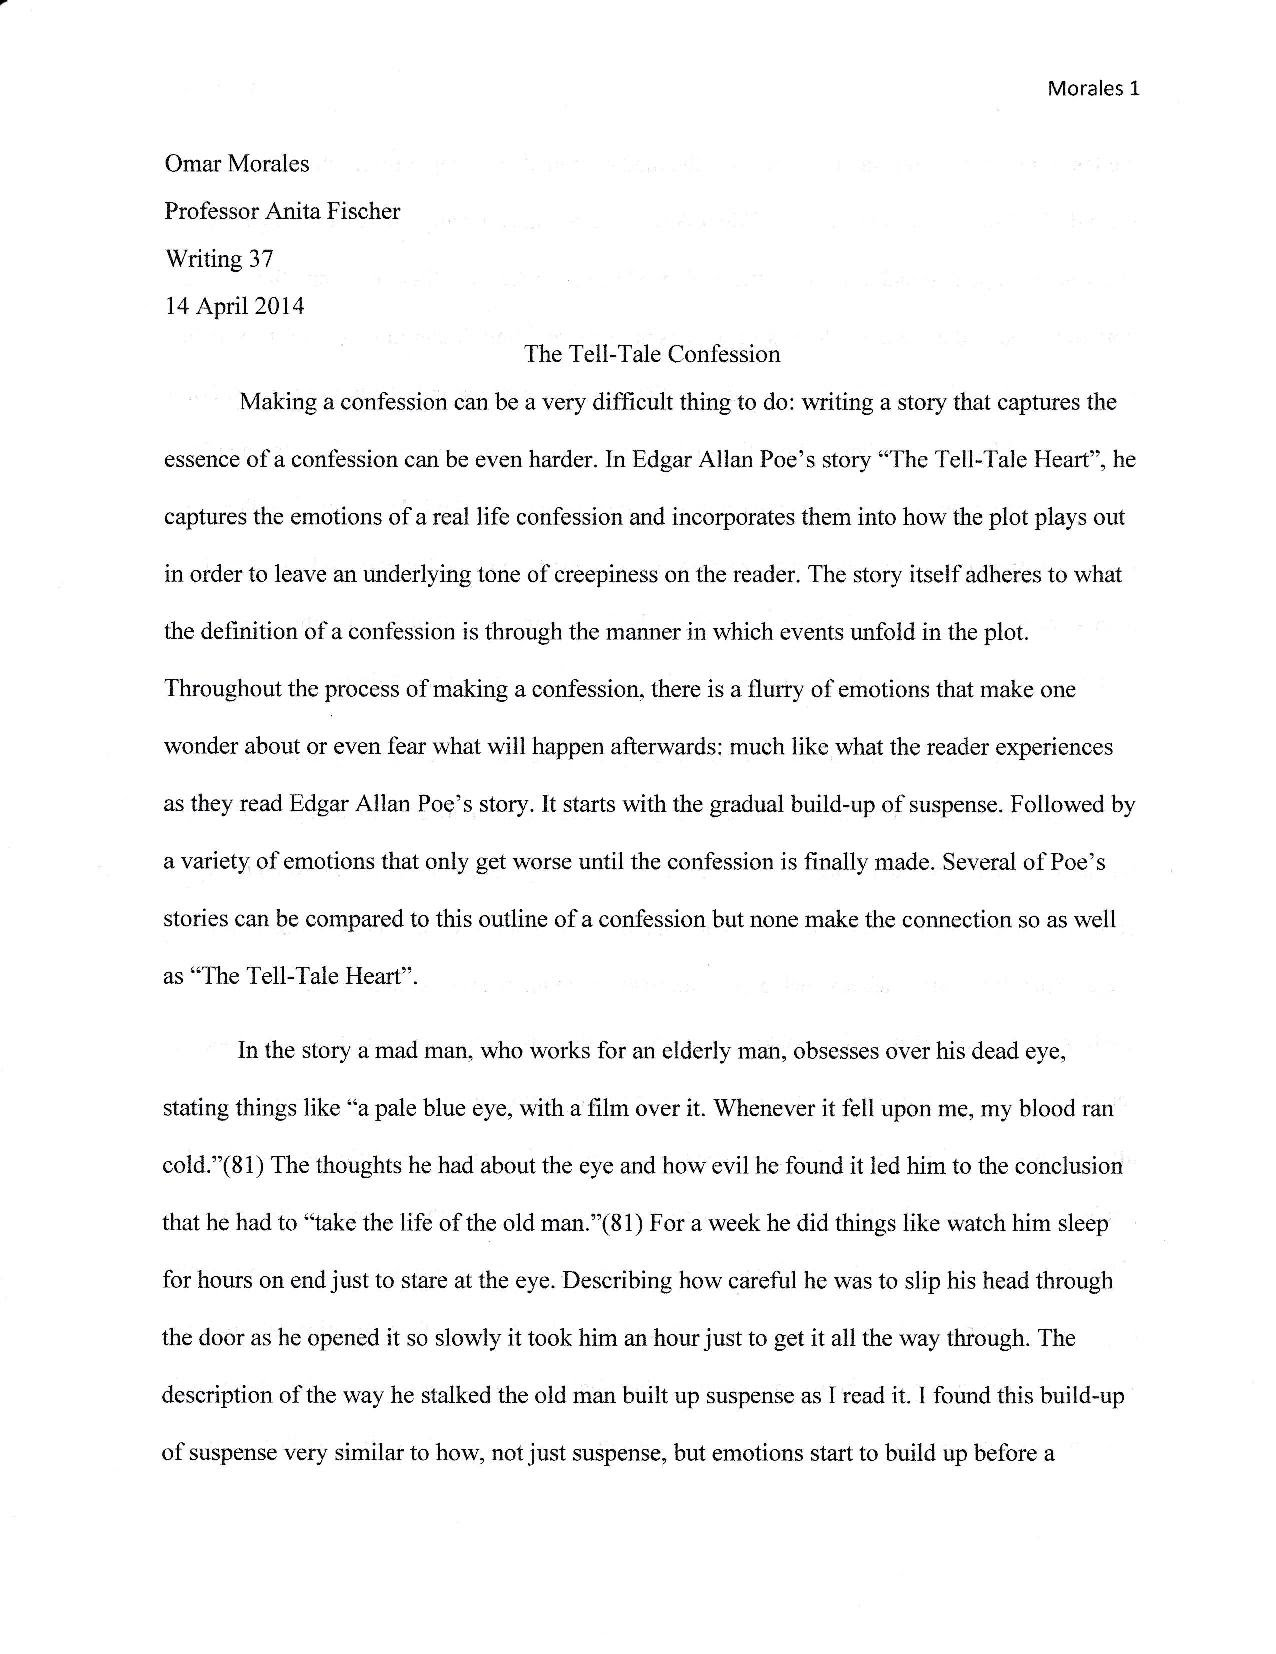 critical reading essay easy ways to write a critical analysis critical reading essay draft omar morales writing portfoliowriting didn t so much show potential but it